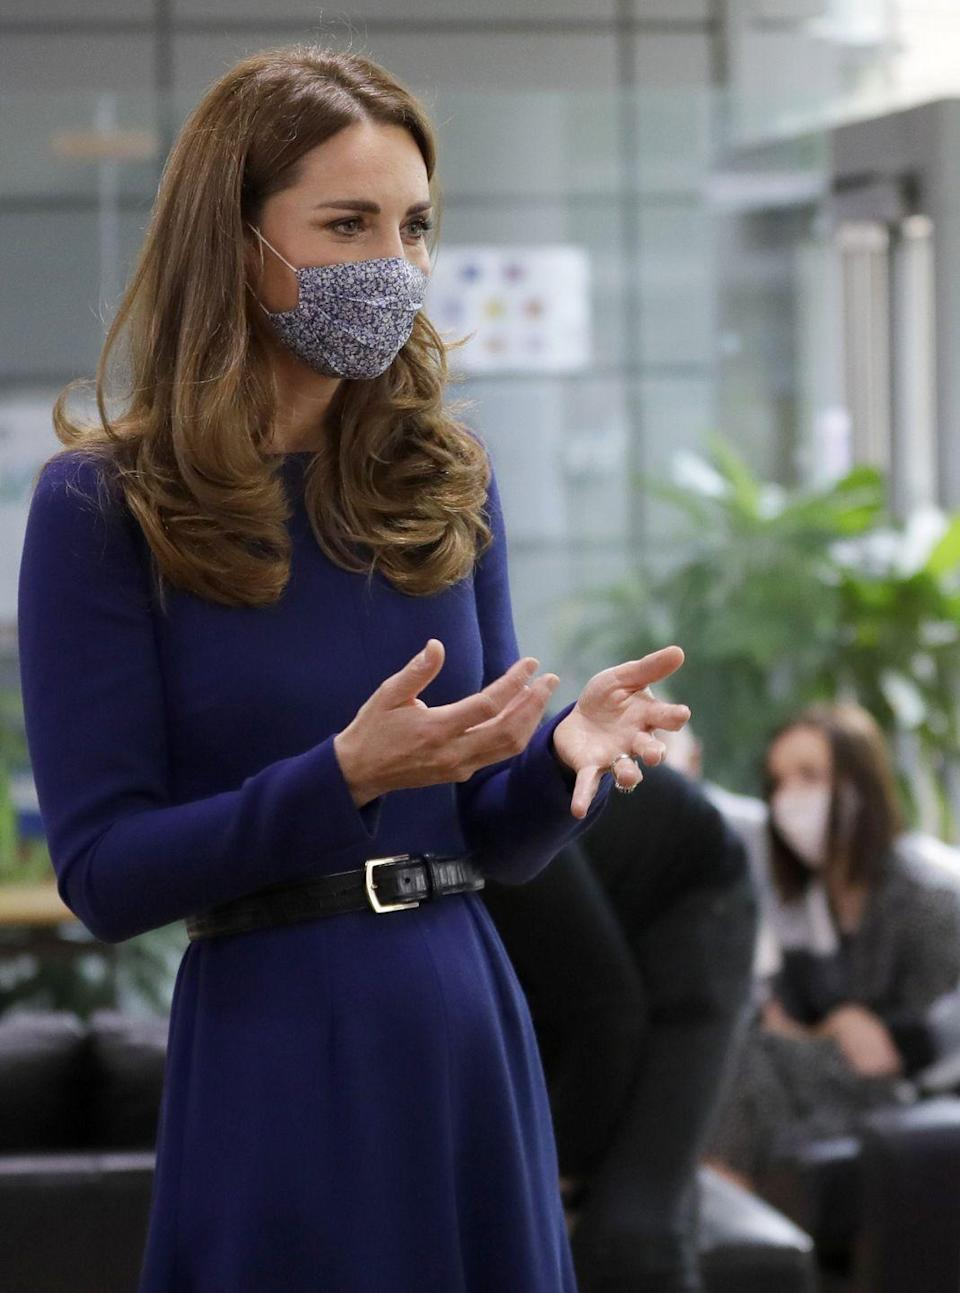 """<p>The Duchess of Cambridge visited the Institute of Reproductive and Development Biology at London's Imperial College. Though she wore a white lab coat for most of the day, underneath, Kate sported an indigo, long-sleeved Emilia Wickstead dress, with a black belt and blue floral mask. </p><p><a class=""""link rapid-noclick-resp"""" href=""""https://go.redirectingat.com?id=74968X1596630&url=https%3A%2F%2Fwww.net-a-porter.com%2Fen-us%2Fshop%2Fproduct%2Femilia-wickstead%2Fjorgie-ruched-cloque-midi-dress%2F1262324&sref=https%3A%2F%2Fwww.townandcountrymag.com%2Fstyle%2Ffashion-trends%2Fnews%2Fg1633%2Fkate-middleton-fashion%2F"""" rel=""""nofollow noopener"""" target=""""_blank"""" data-ylk=""""slk:Shop a Similar Style"""">Shop a Similar Style</a></p>"""